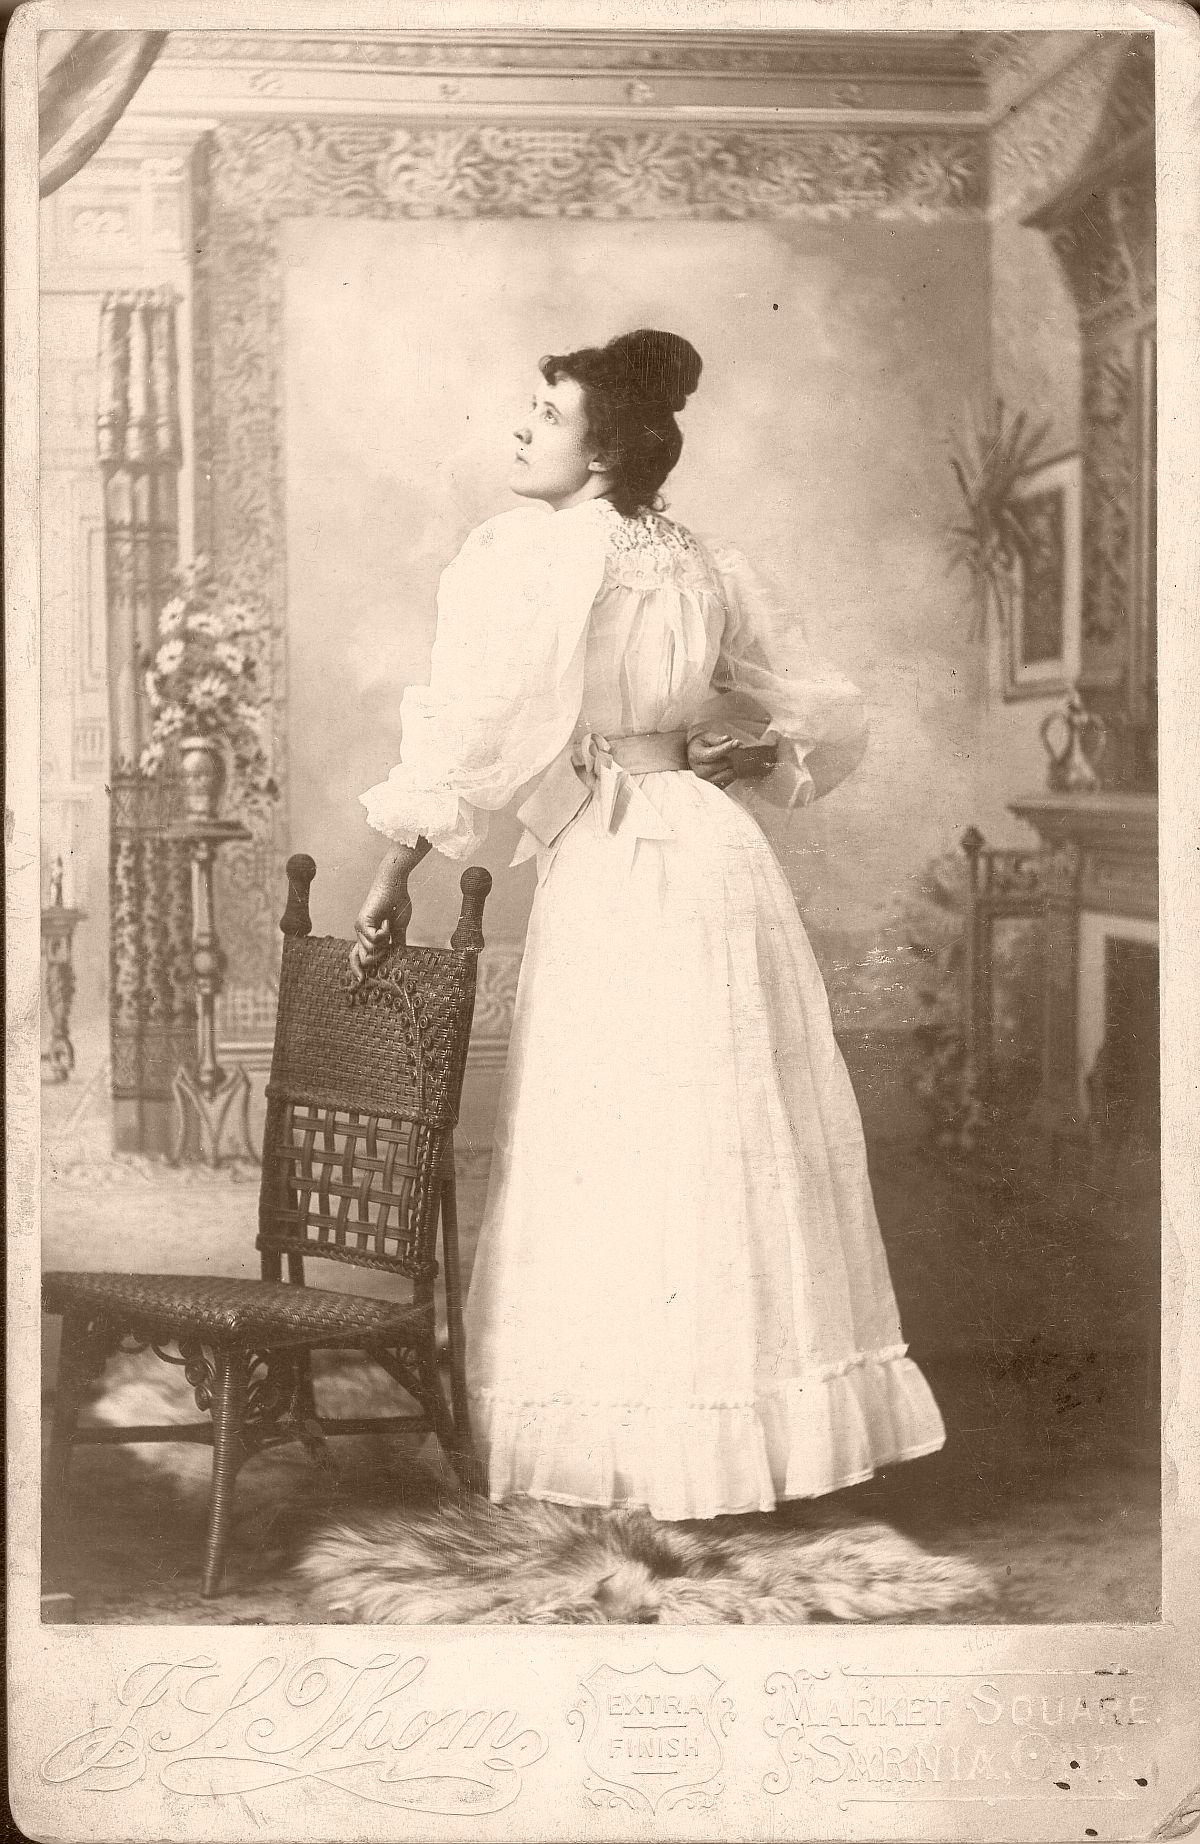 cabinet-cards-1870s-to-1880s-vintage-19th-century-victorian-era-04